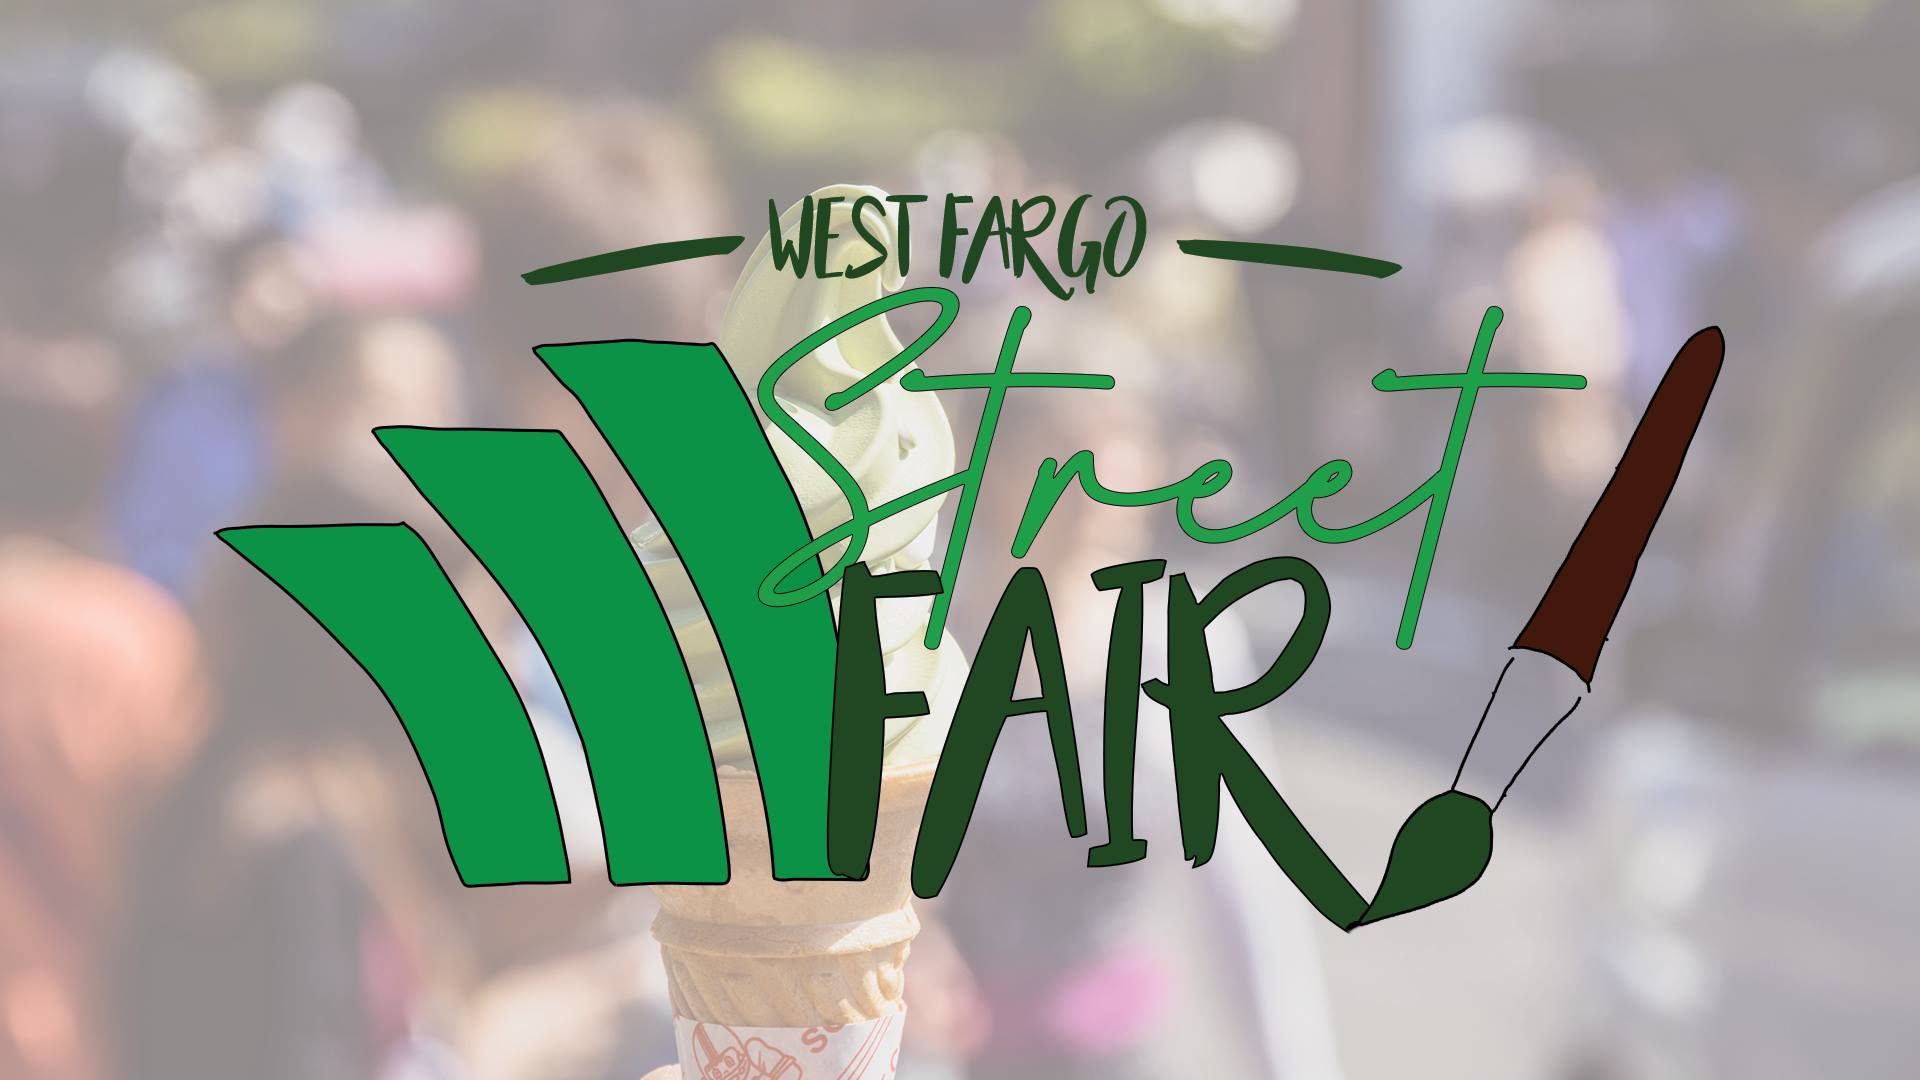 Street Fair logo with ice cream cone background